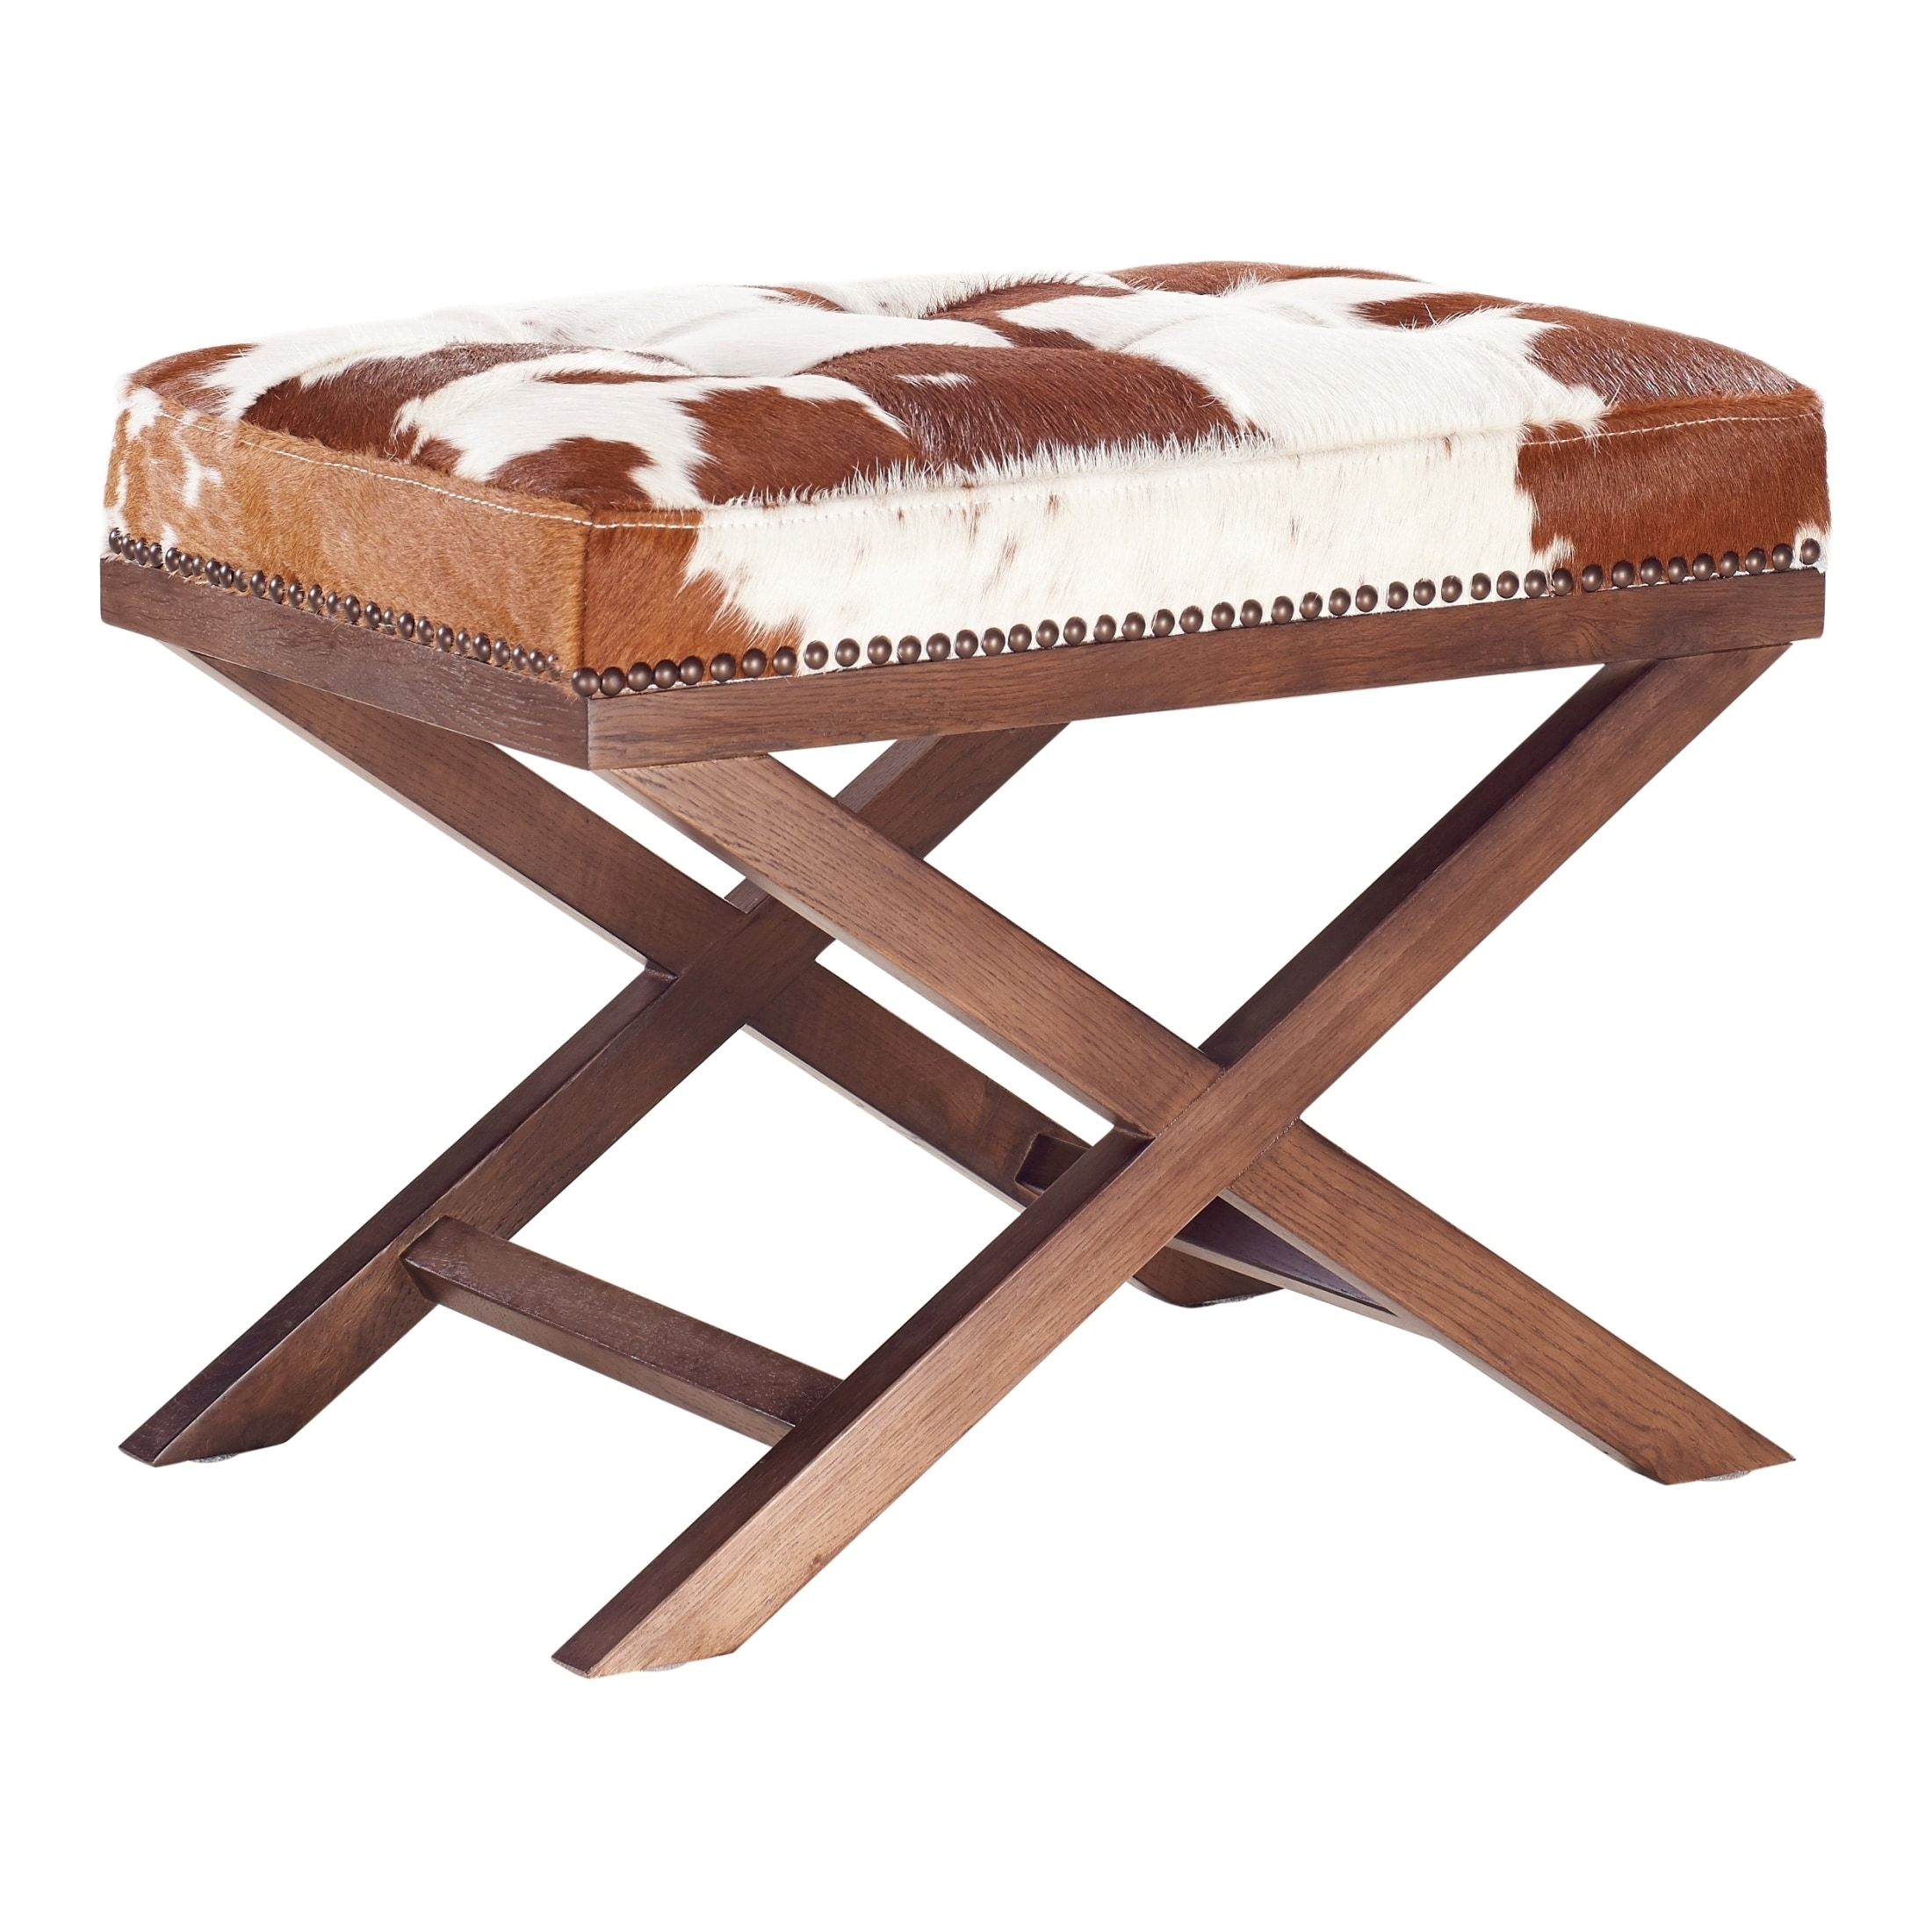 l bare in ottoman large round product leather black white cowhide decor klteya and